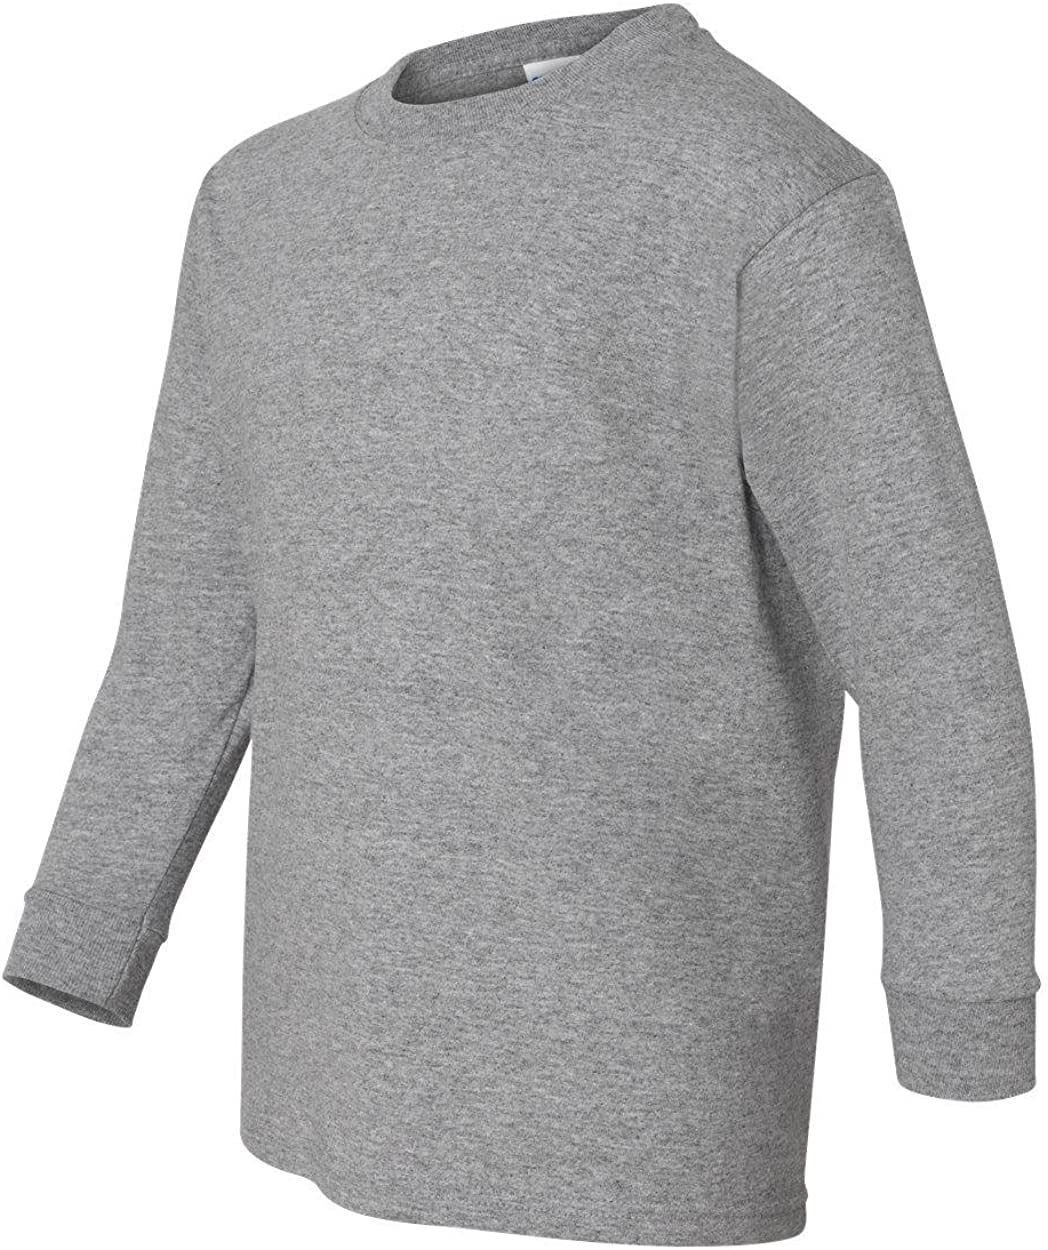 Youth Heavy Cotton Long Sleeve T-Shirt (Sport Grey) (Large)